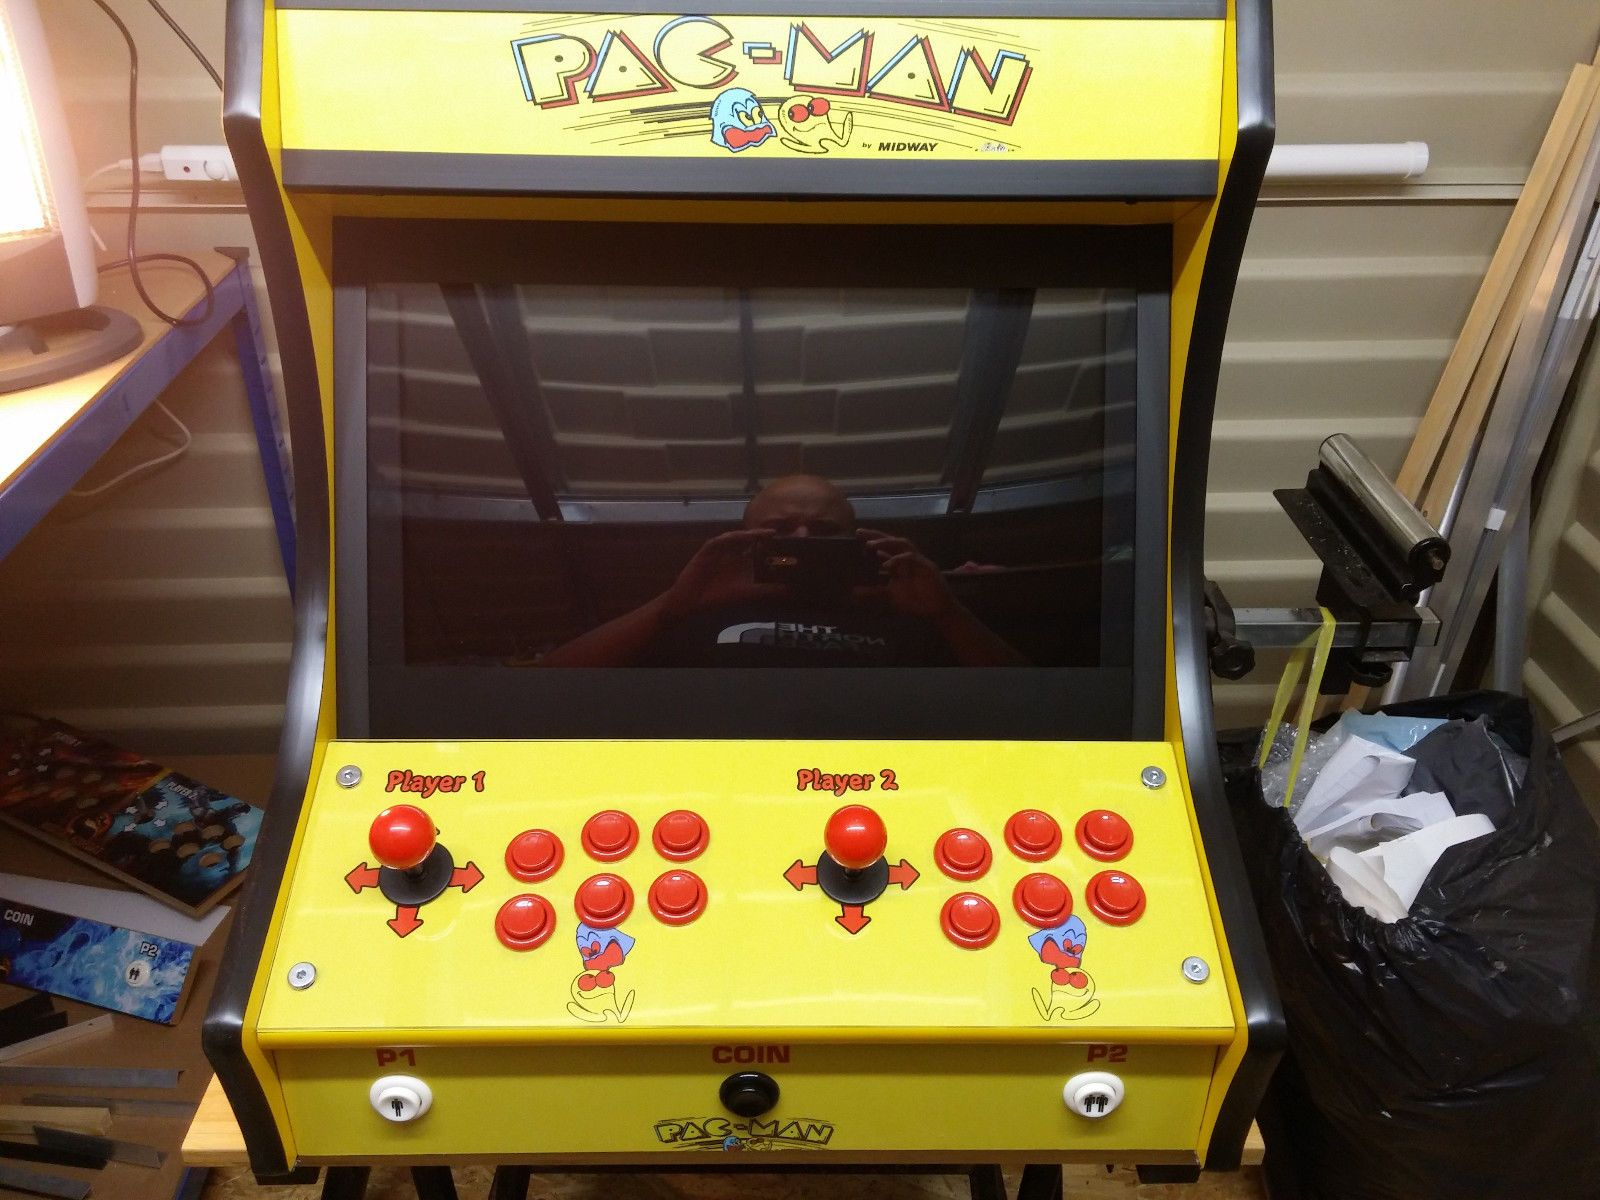 20+ Raspberry Pi Arcade Machine Bar Top Pictures and Ideas